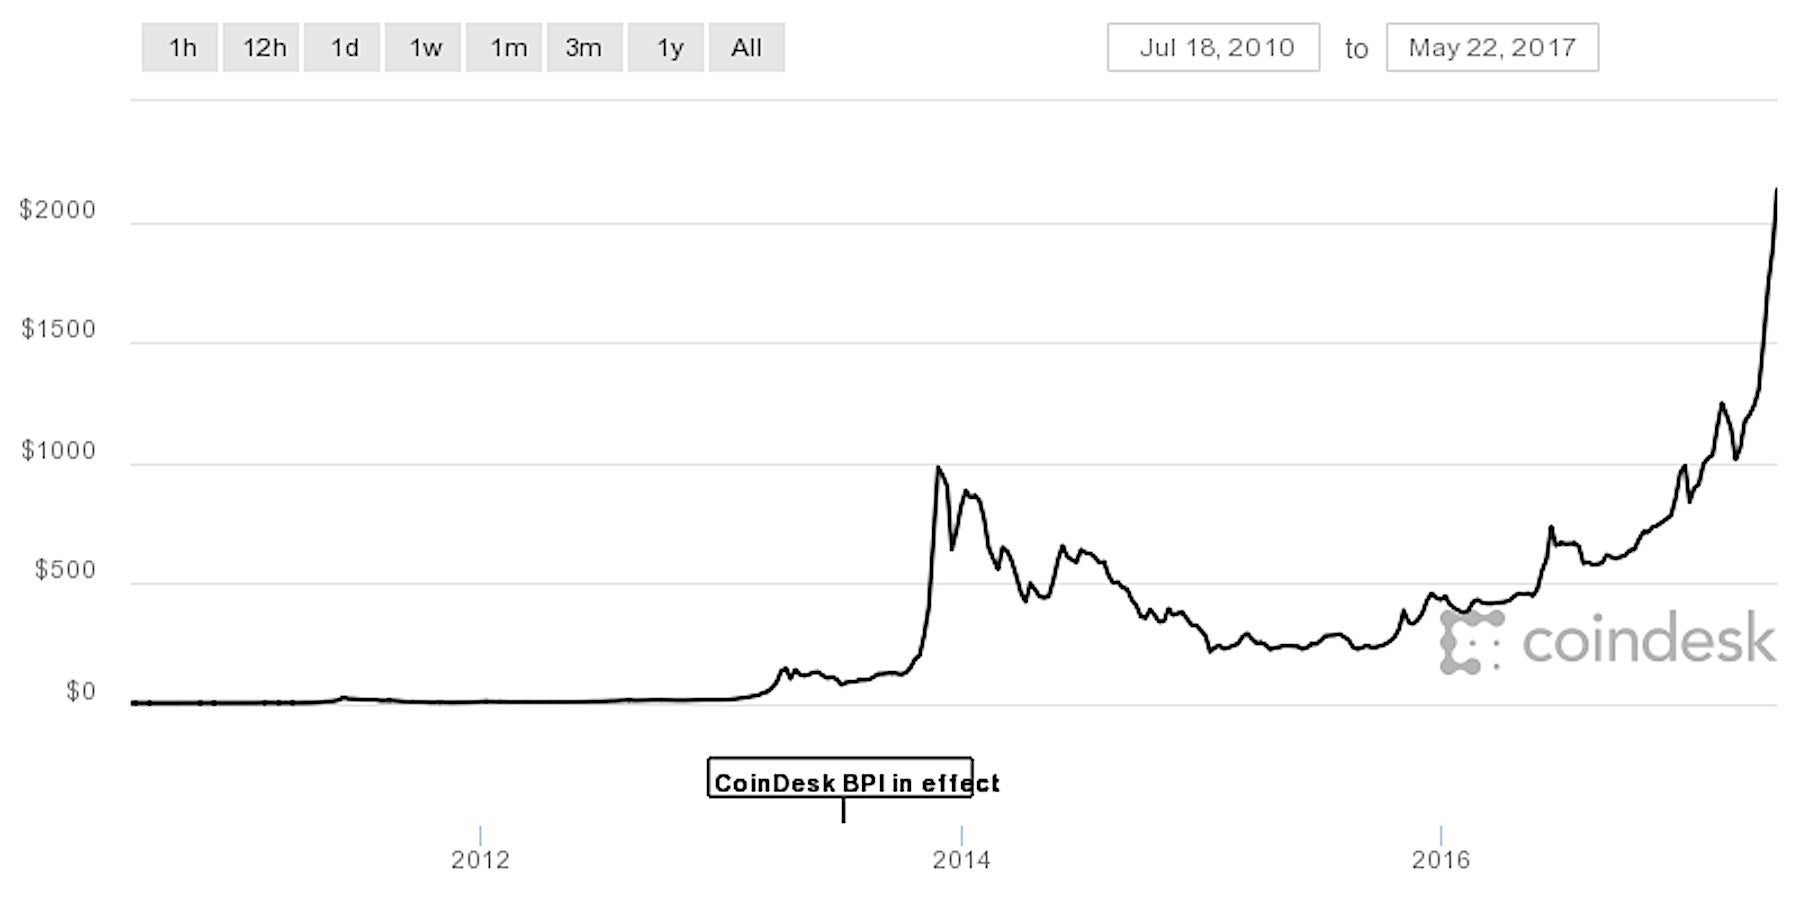 how to buy bitcoin in 2010